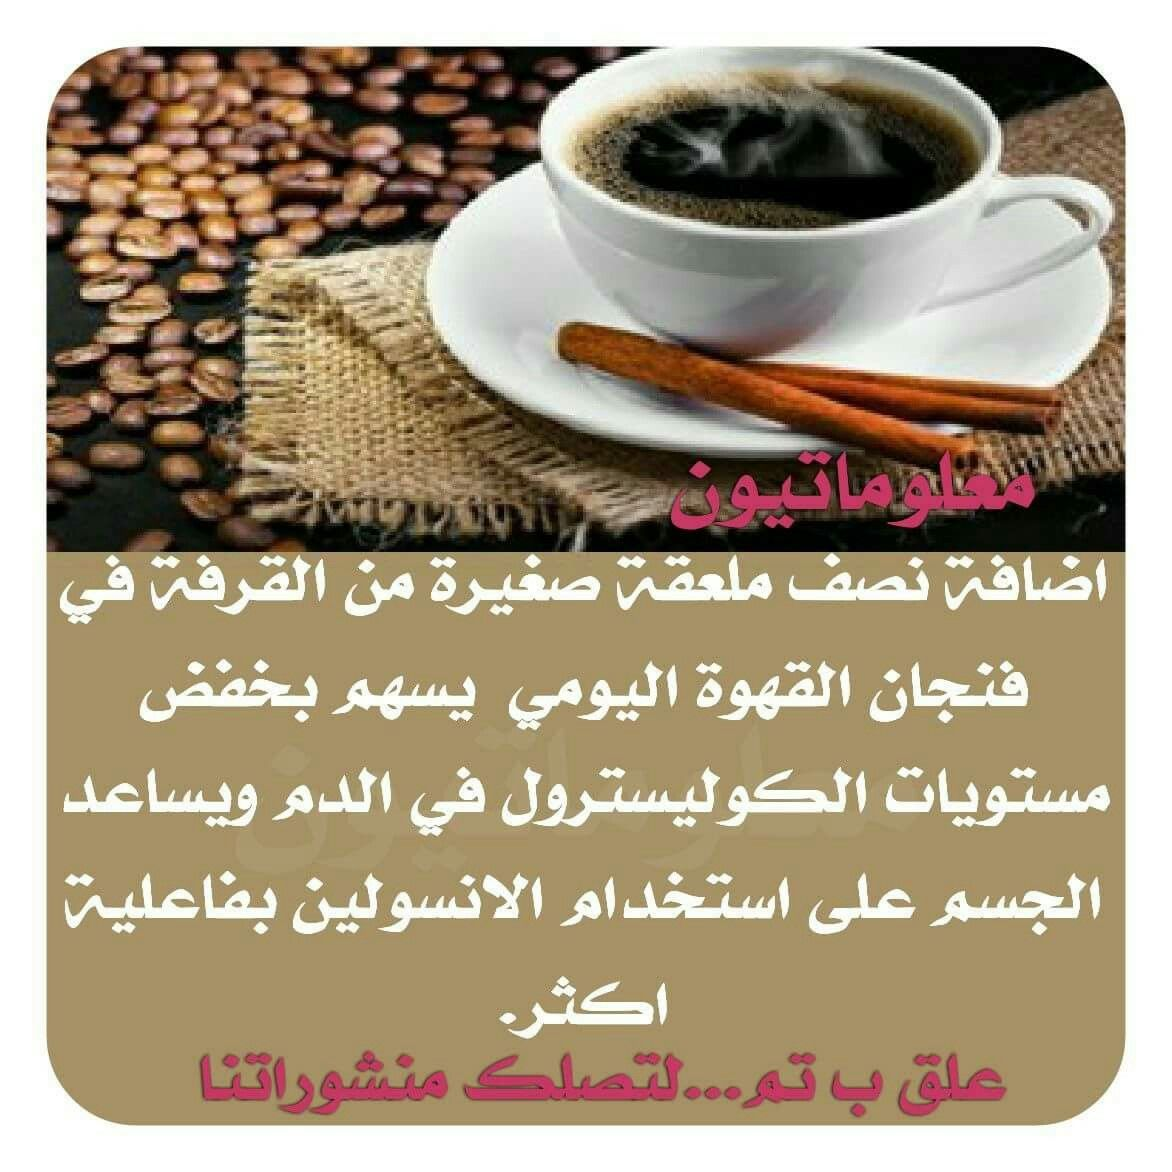 Pin By Maged Elshreif On فوائد صحية How To Stay Healthy Natural Medicine Natural Health